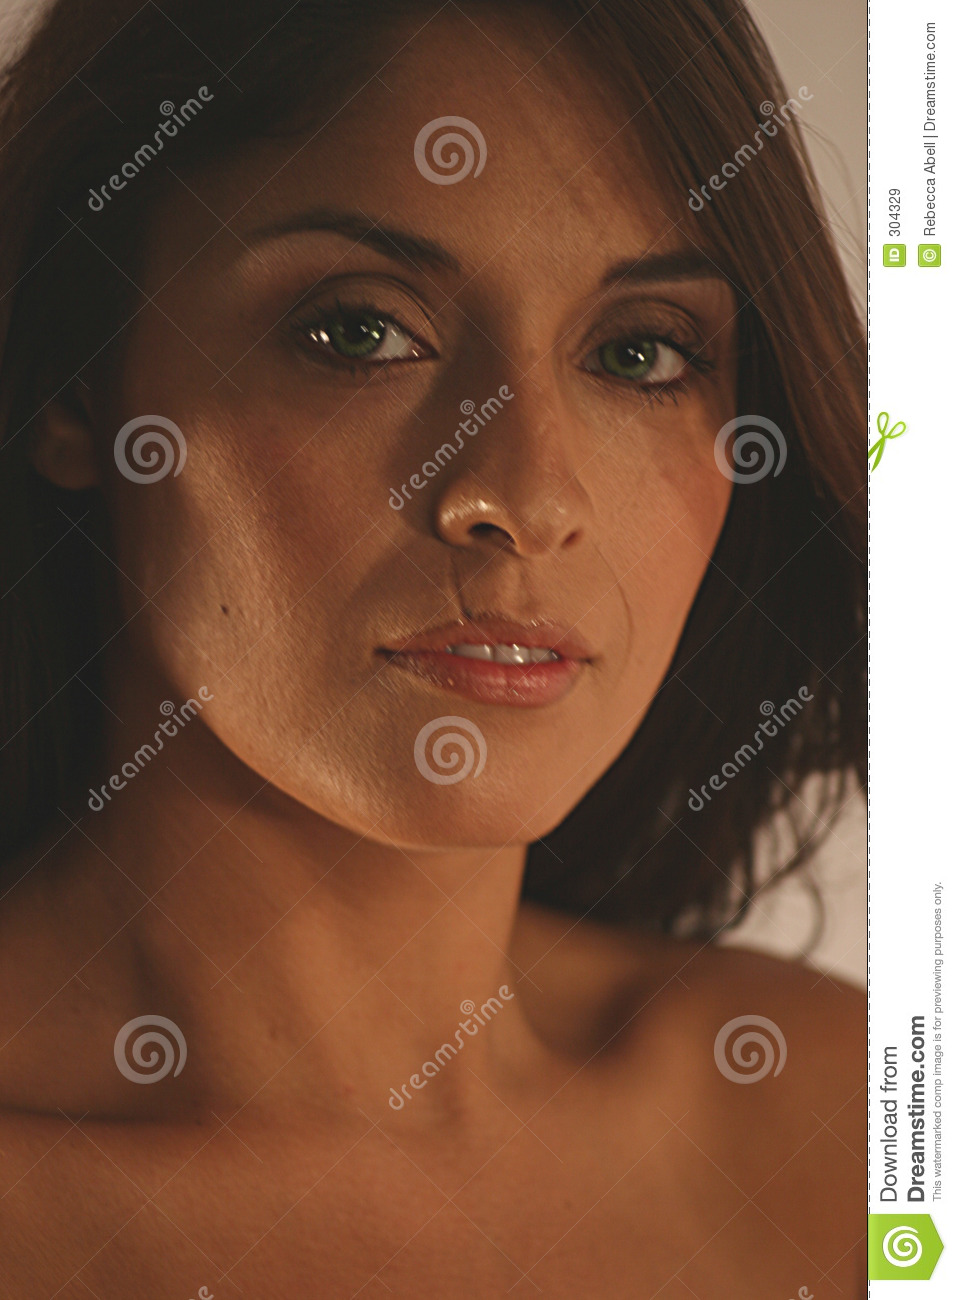 Nude Spanish Woman Stock Images - Download 31 Royalty Free Photos-7327